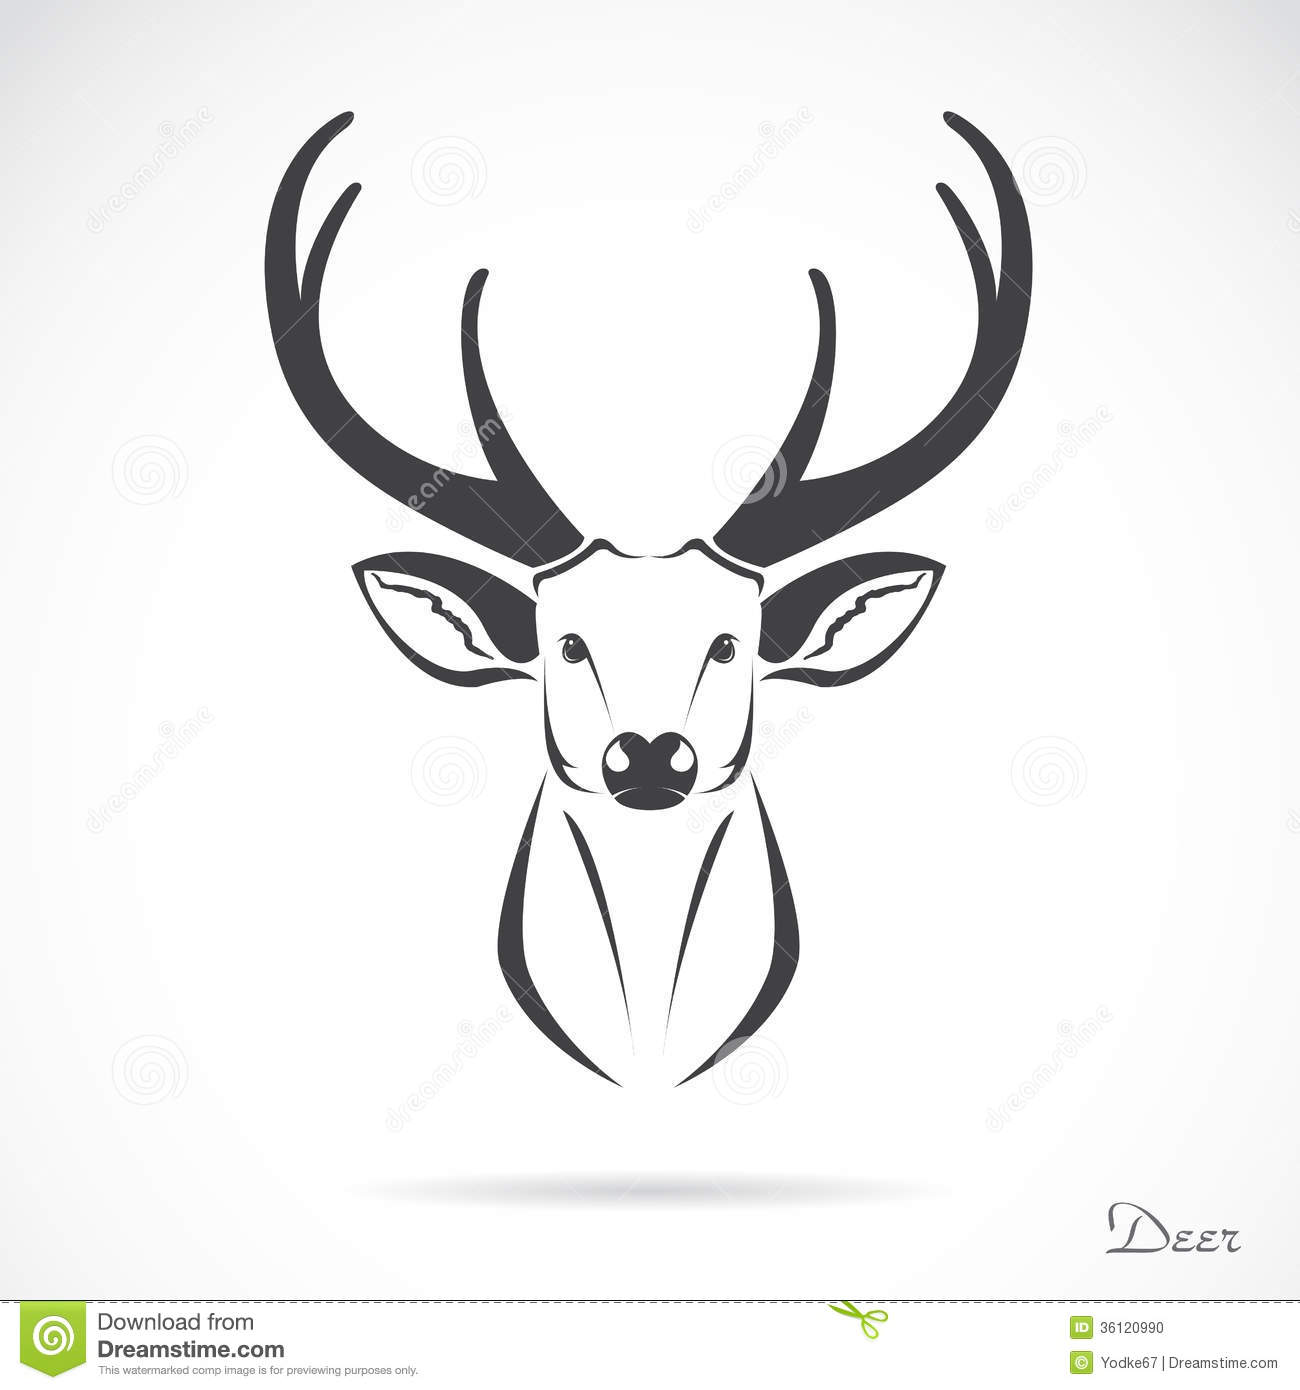 Vector Image Of An Deer Head Stock Vector Illustration Of Horns